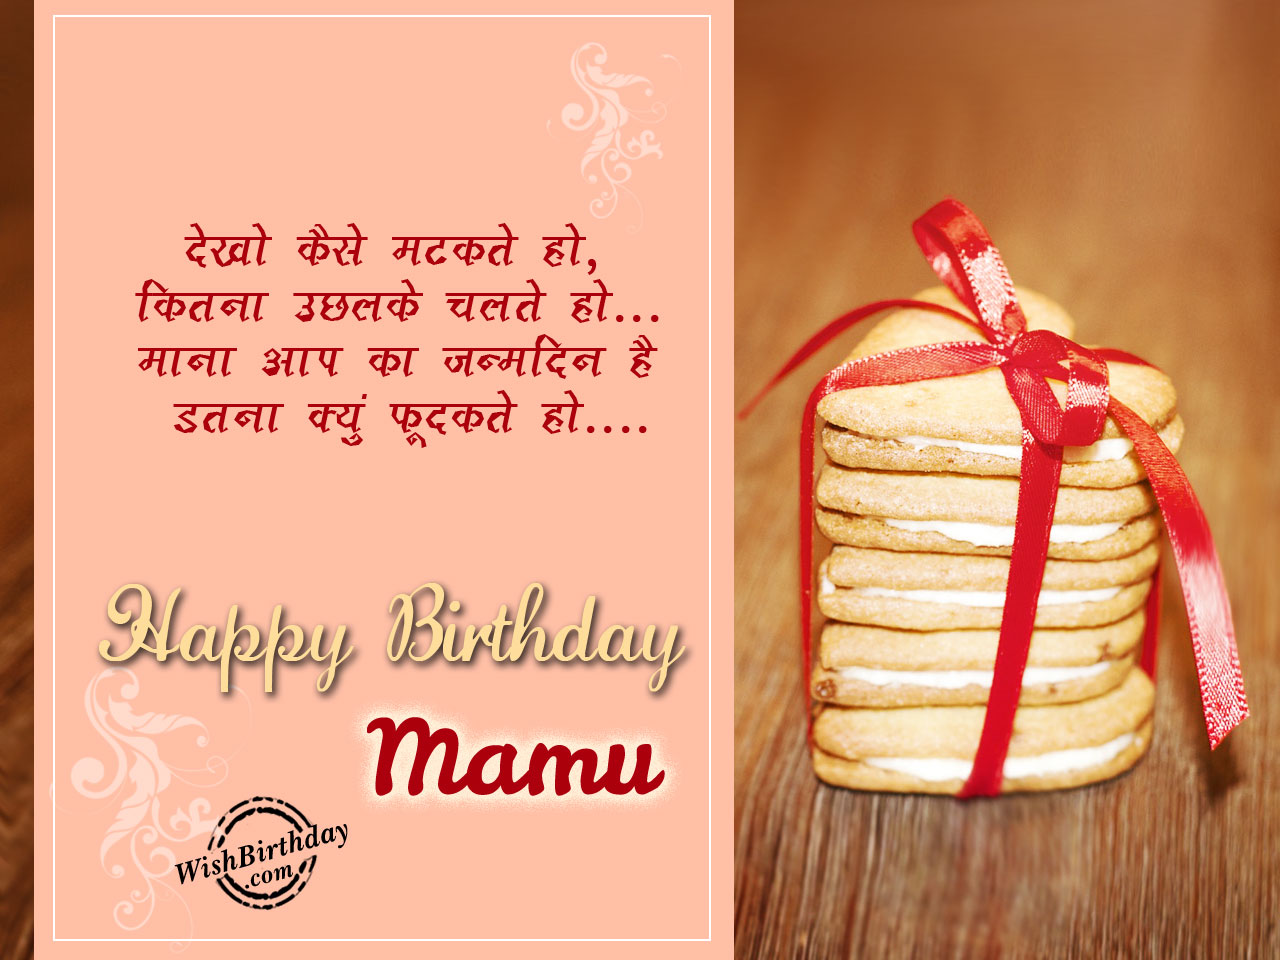 Happy Birthday Letter To A Friend In Hindi